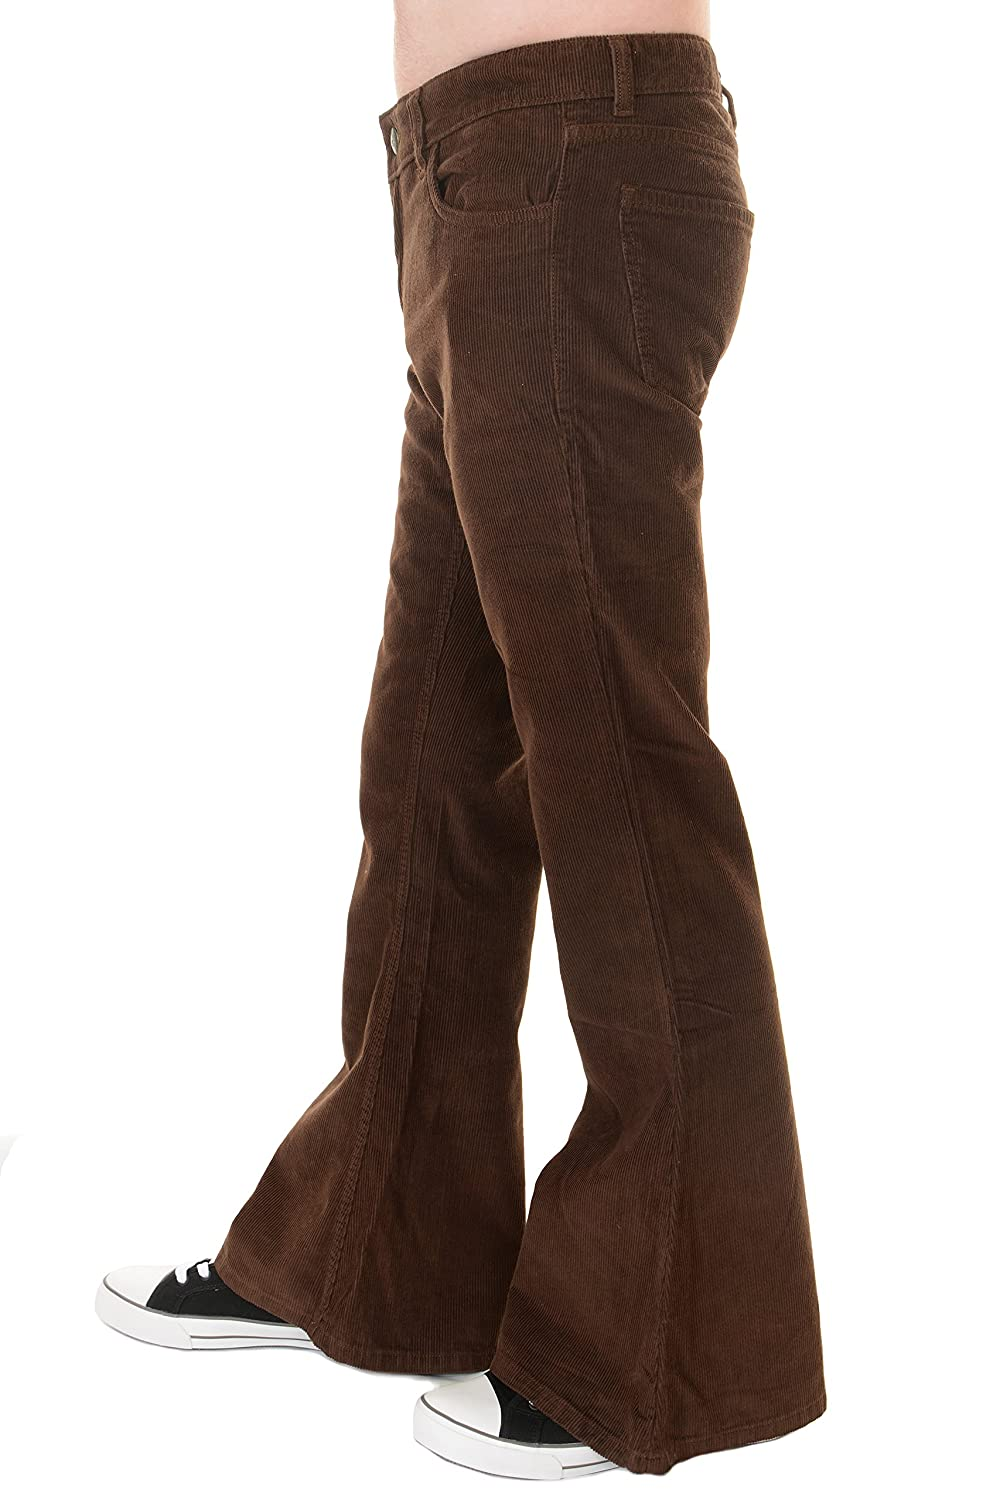 60s – 70s Mens Bell Bottom Jeans, Flares, Disco Pants Run & Fly Mens 70s Vintage Retro Brown Corduroy Bell Bottom Flares �29.99 AT vintagedancer.com